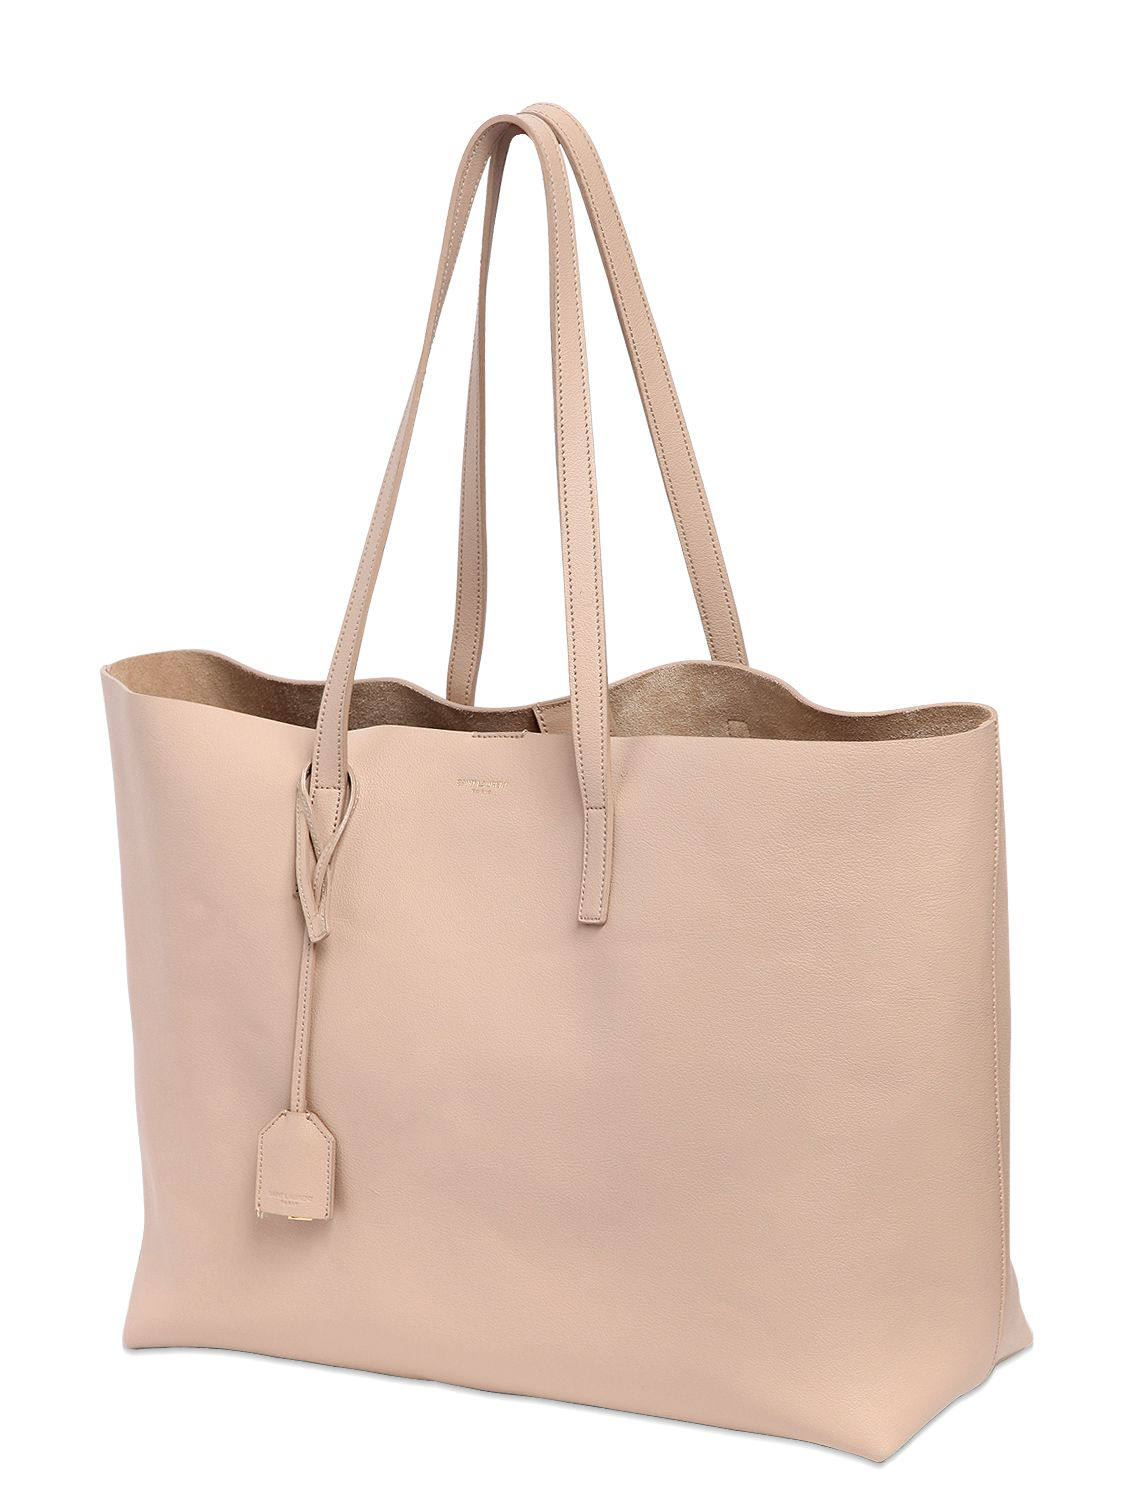 Lyst - Saint Laurent Soft Leather Tote Bag in Natural